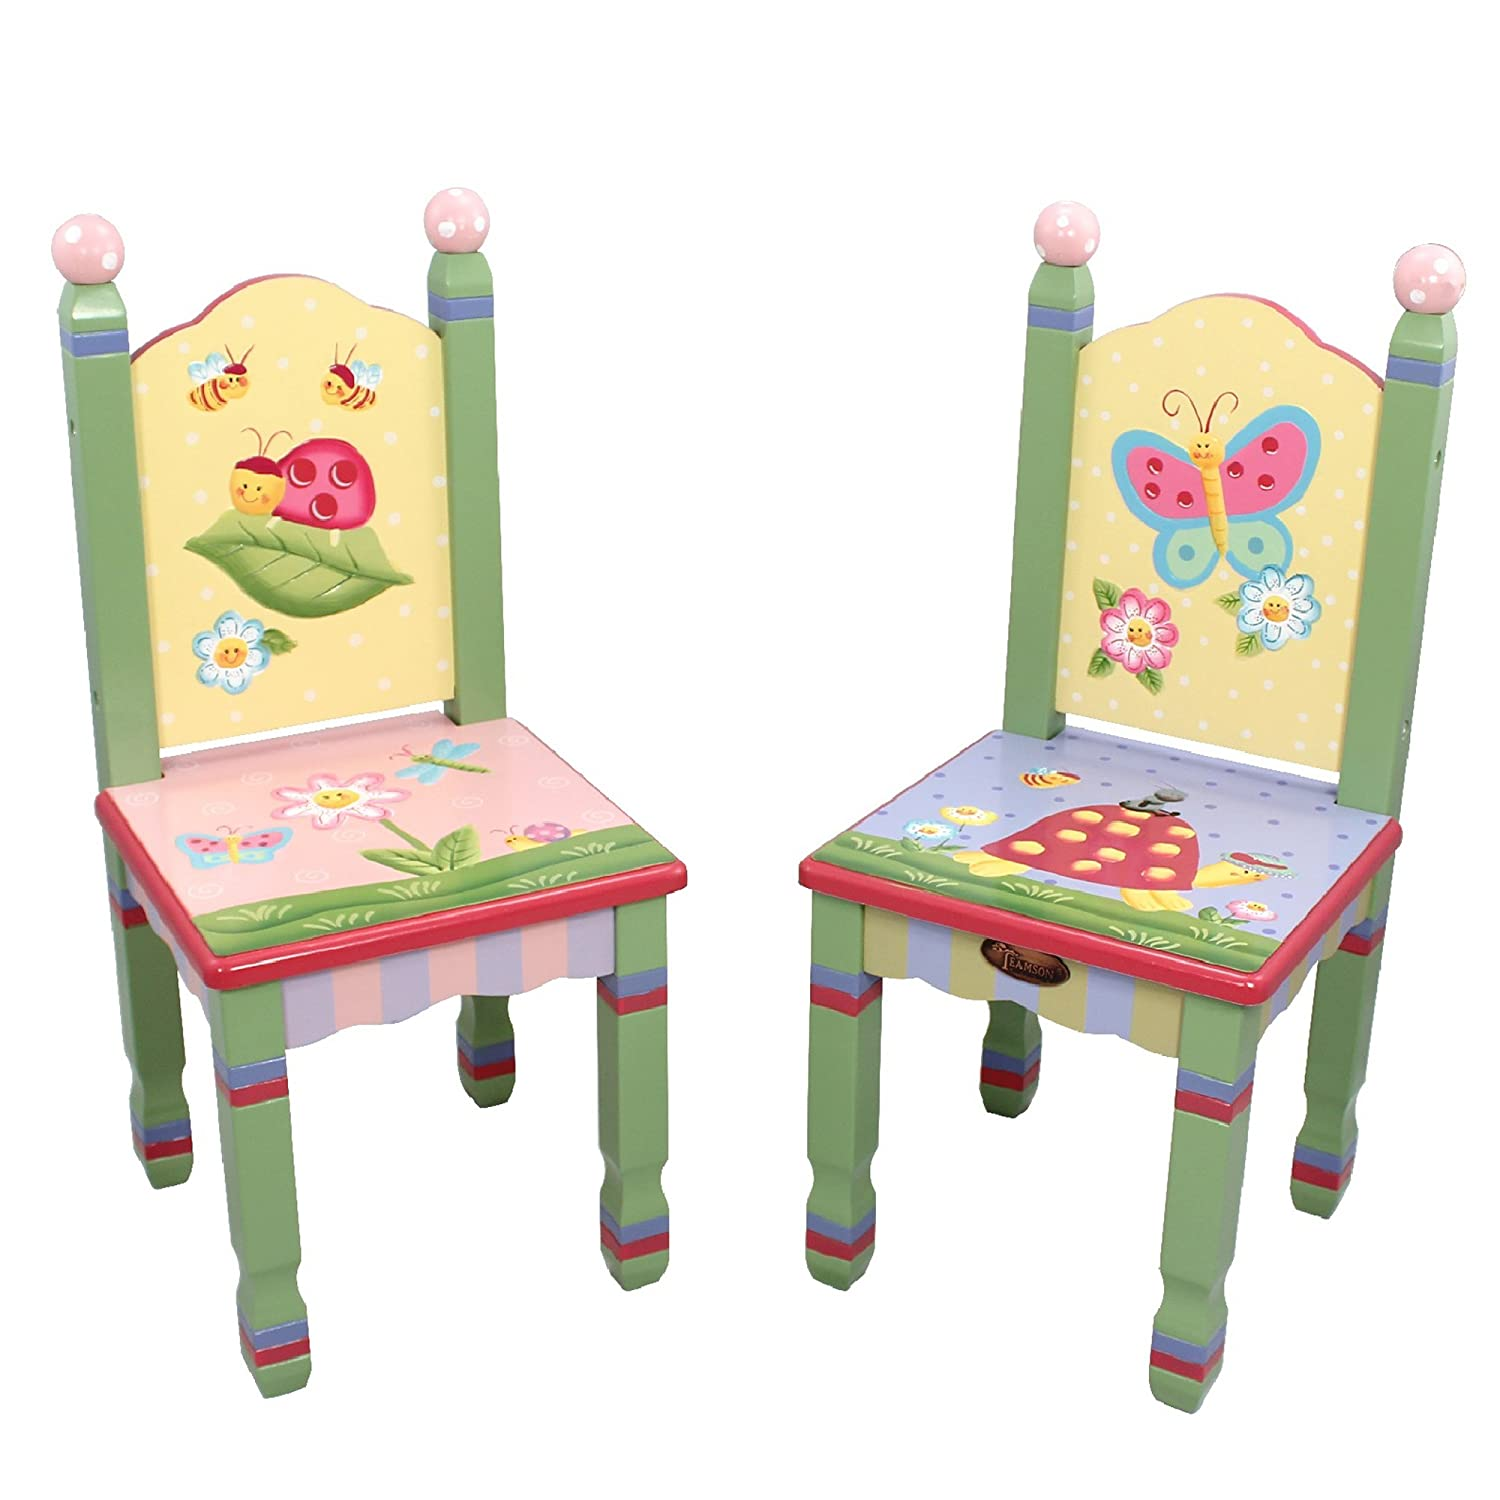 Juego de mesa y silla infantil de madera Magic Garden de Fantasy Fields W-7484A: Amazon.es: Bebé